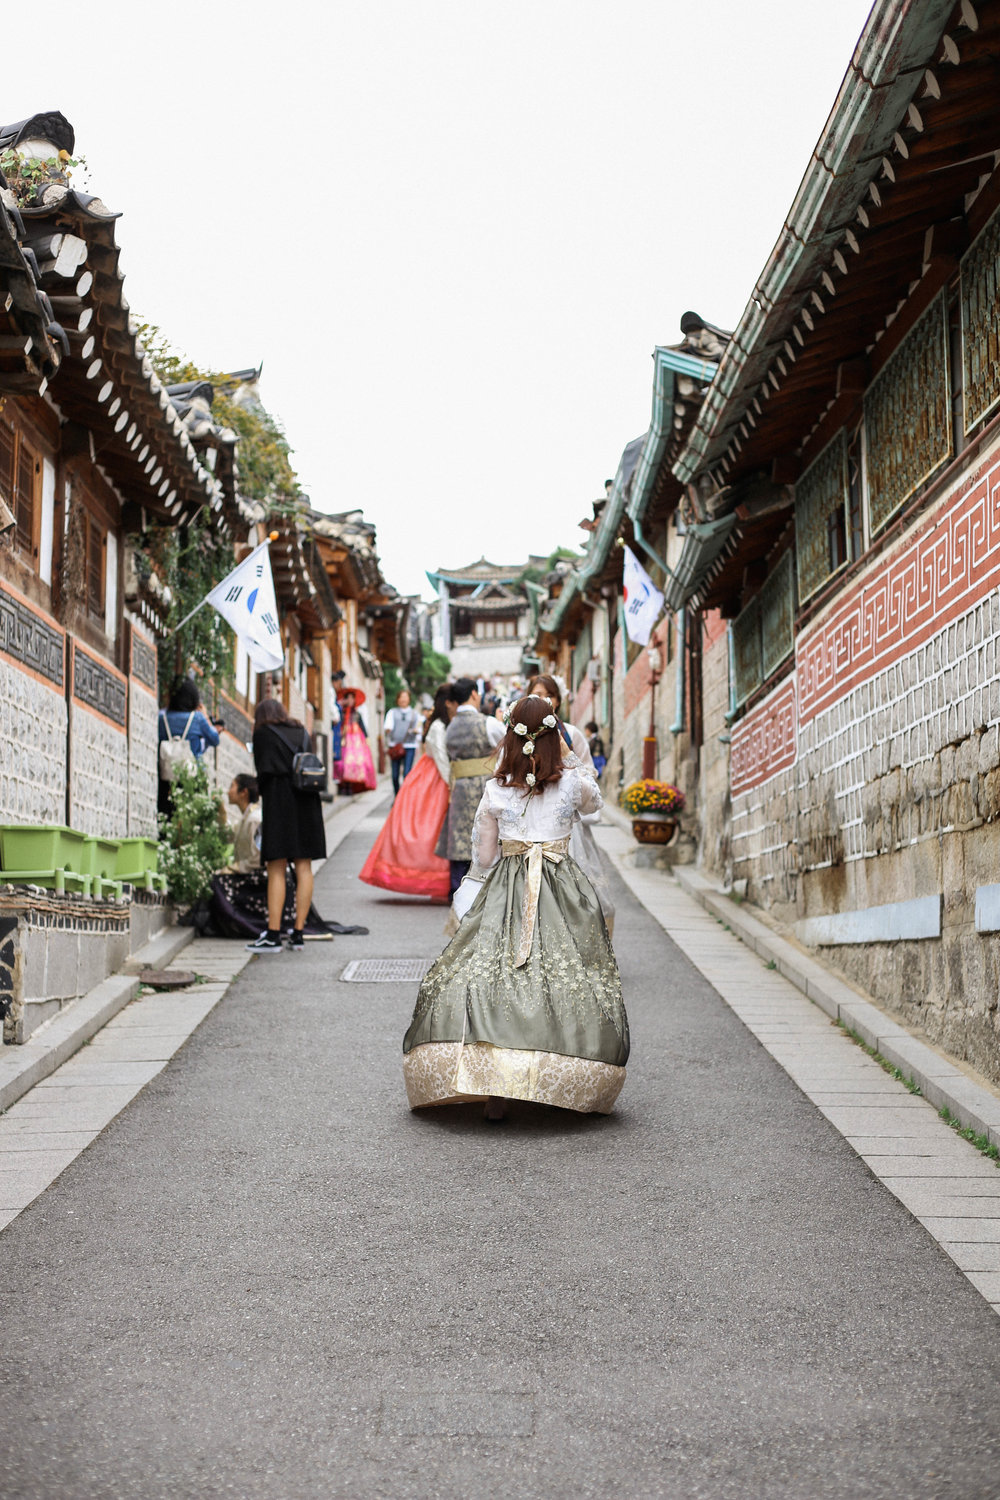 Bukchon Hanok Village, Seoul | On the Street Where We Live (aretherelilactrees.com)